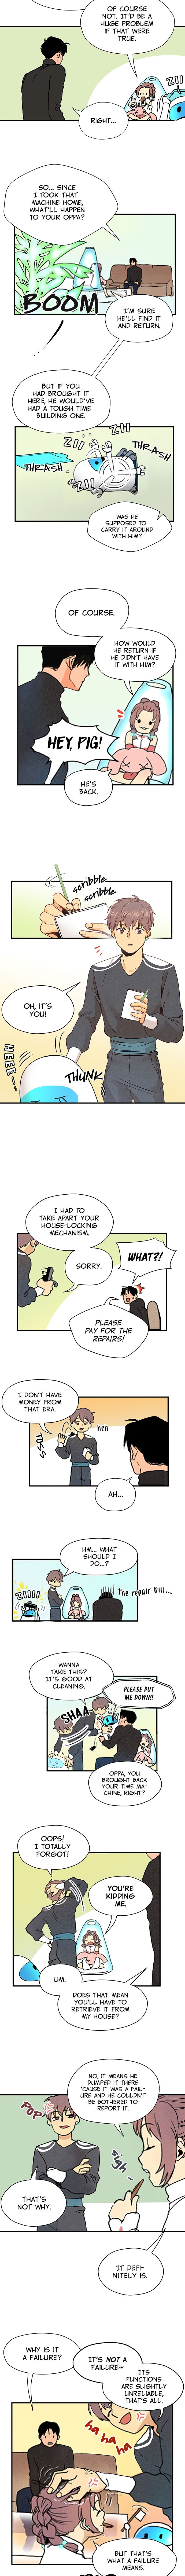 11me - chapter 2 - #3